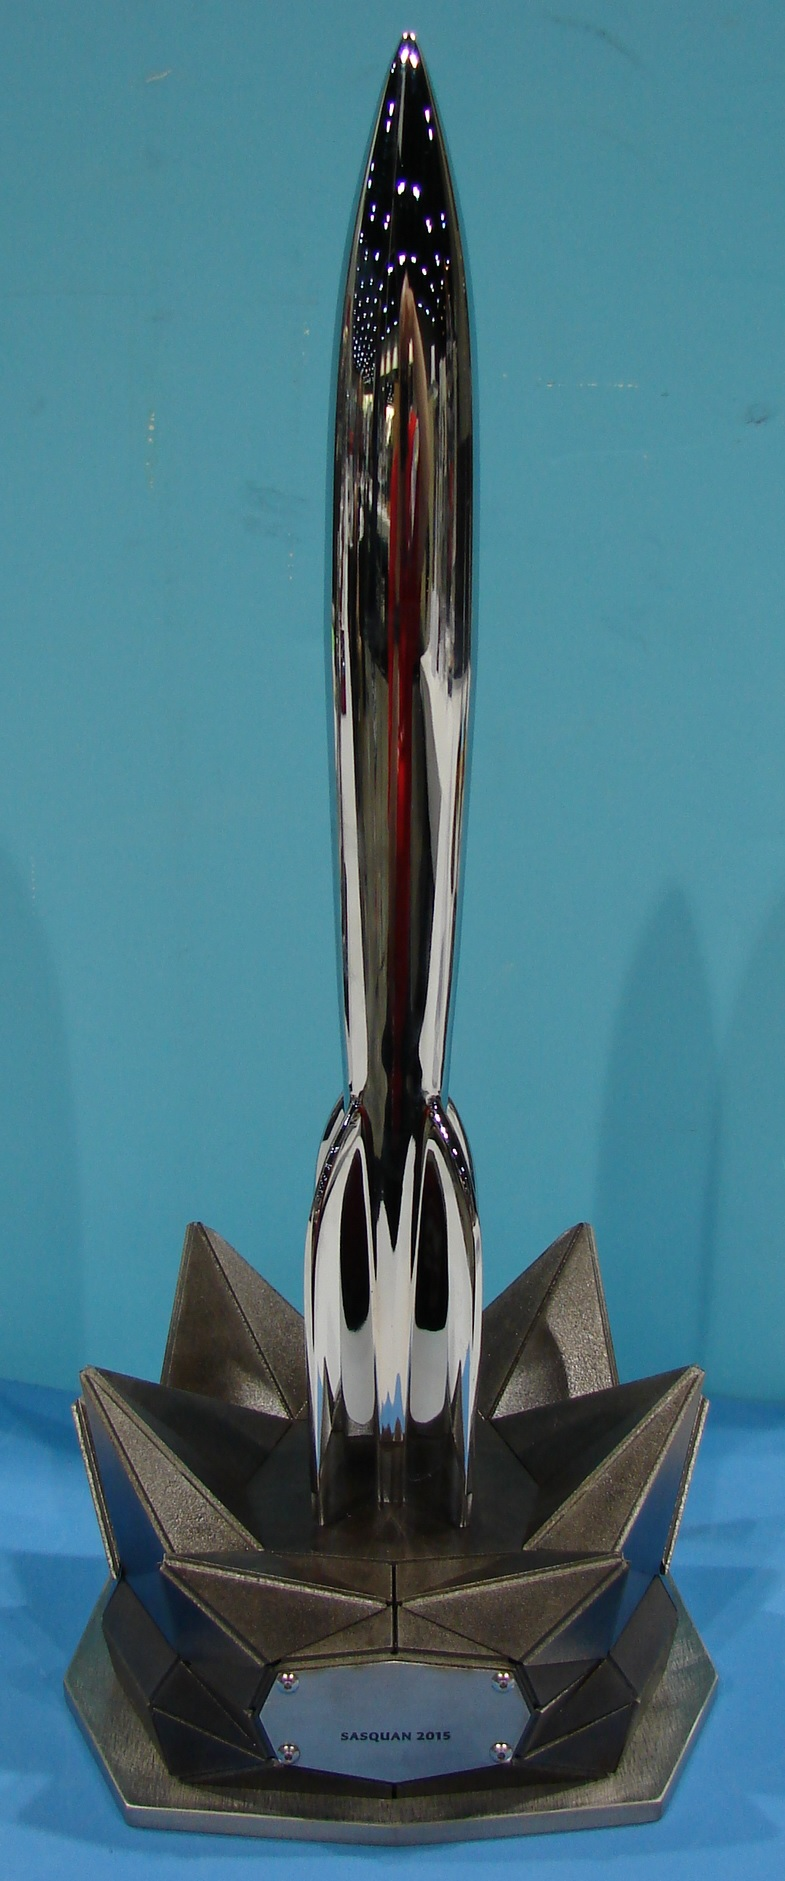 2015 Hugo Award statuette. Design by Matthew Dockrey and photo by Kevin Standlee.